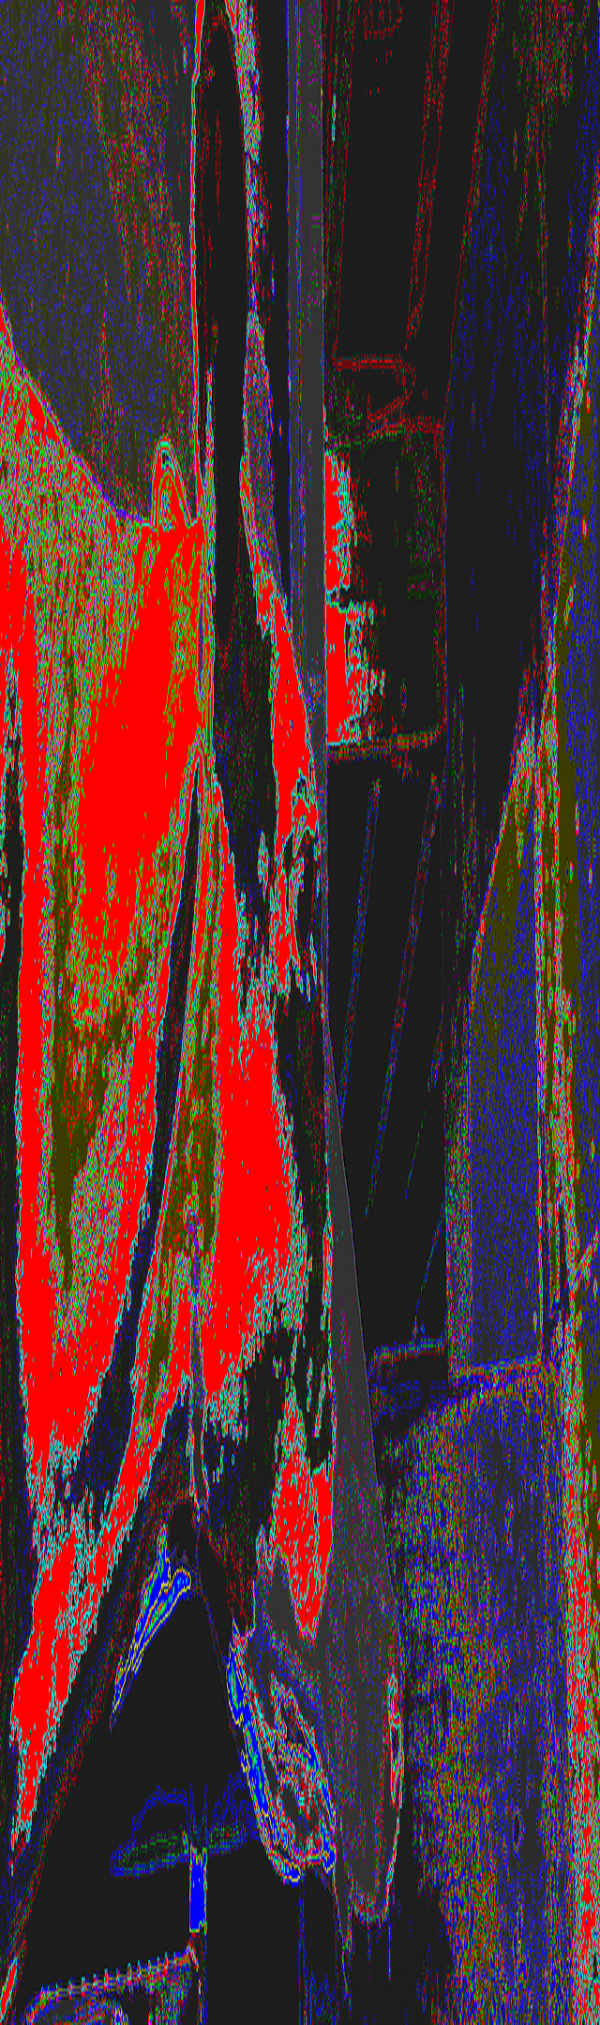 2015-03-22 16.12.222222.PNG